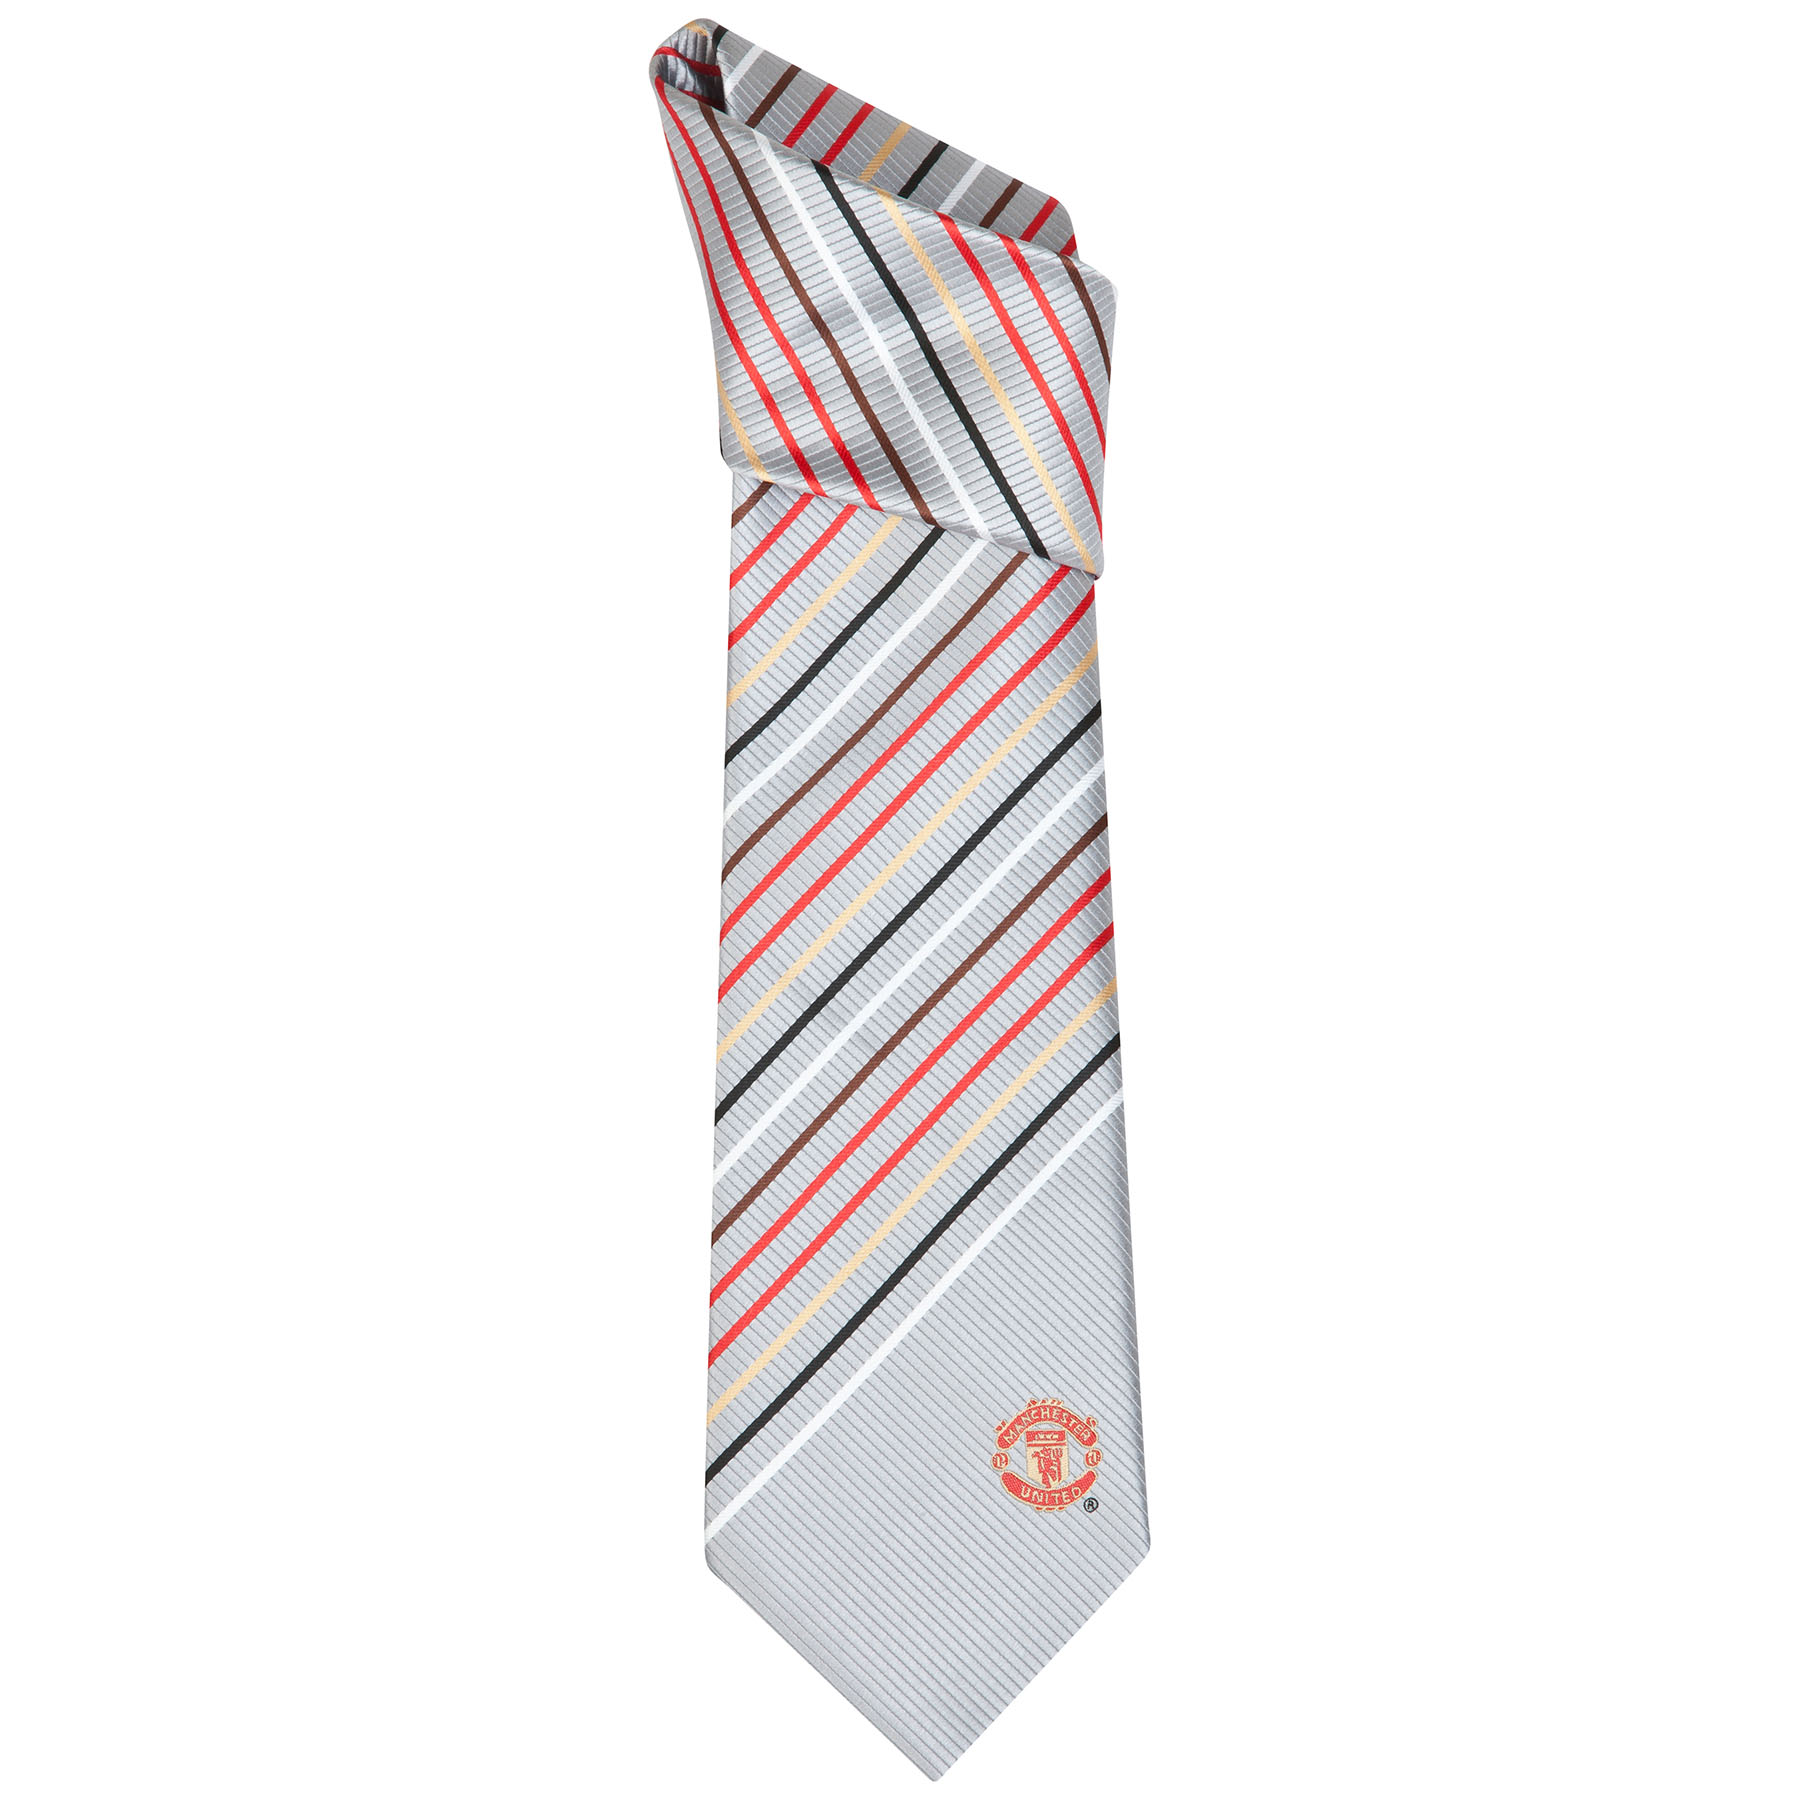 Manchester United Crest Multi Stripe Tie - Polyester